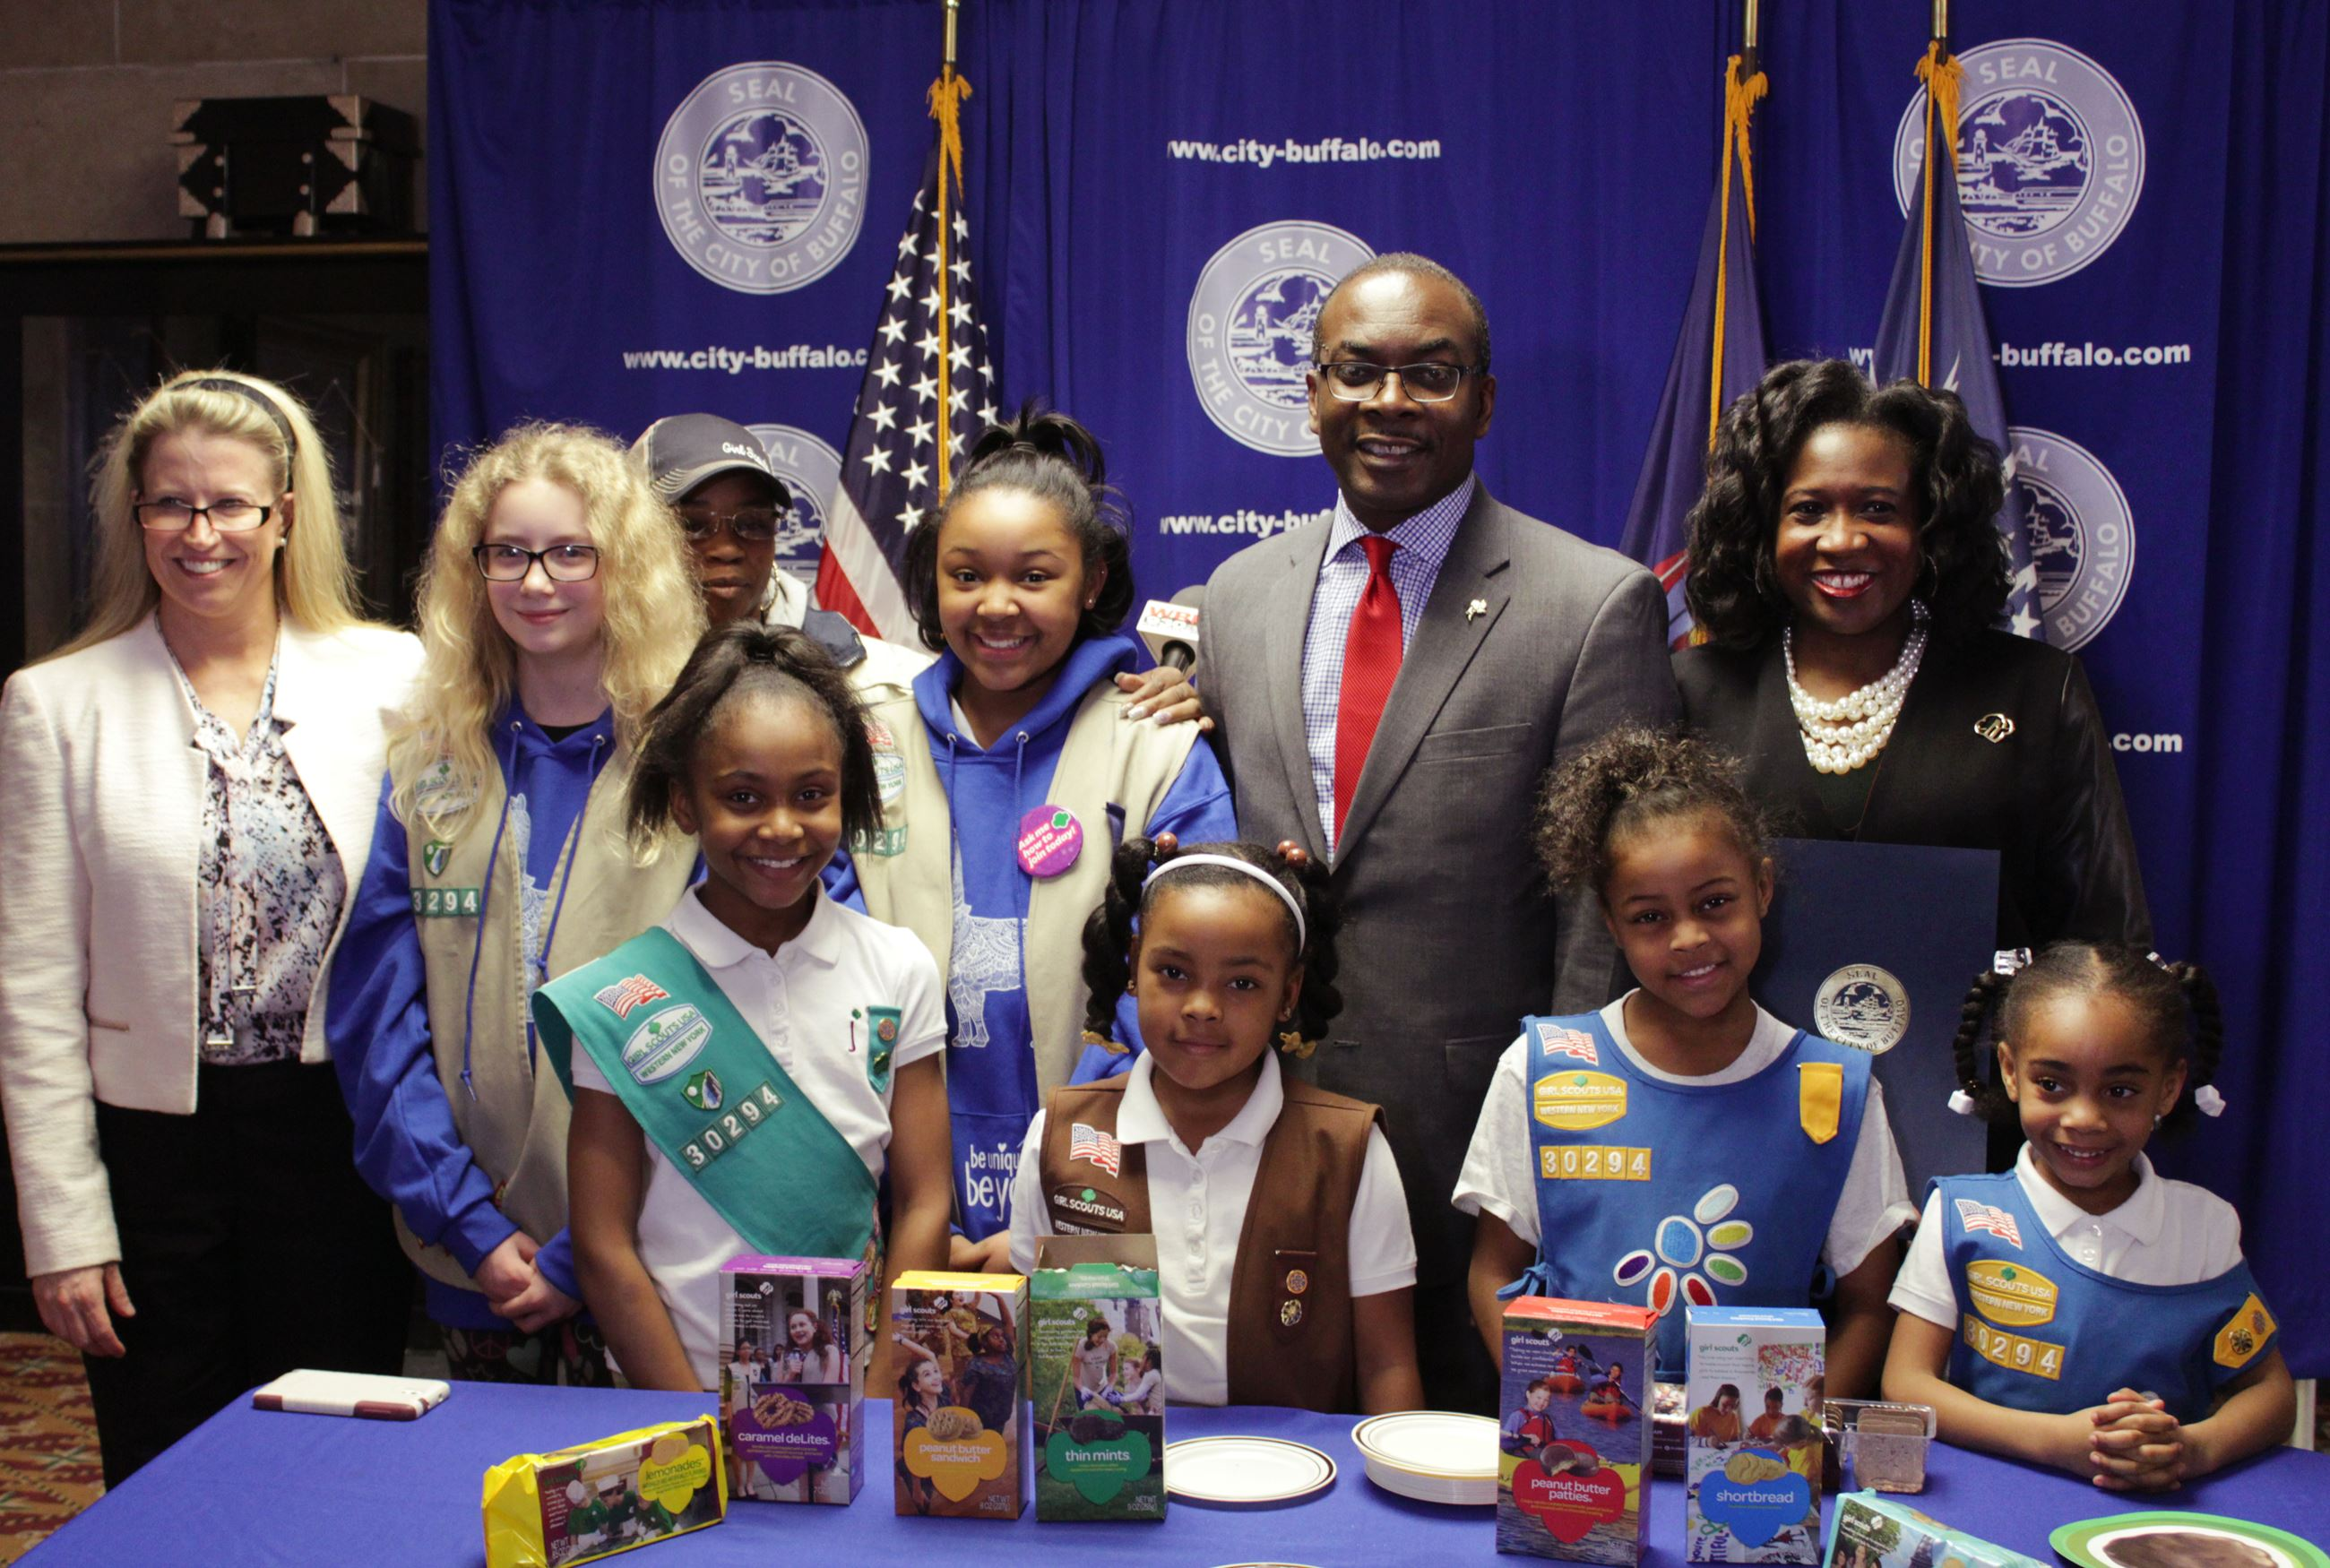 Mayor Brown Marked The 100th Year Of The First Known Sale Of Girl Scout Cookies With Proclamation